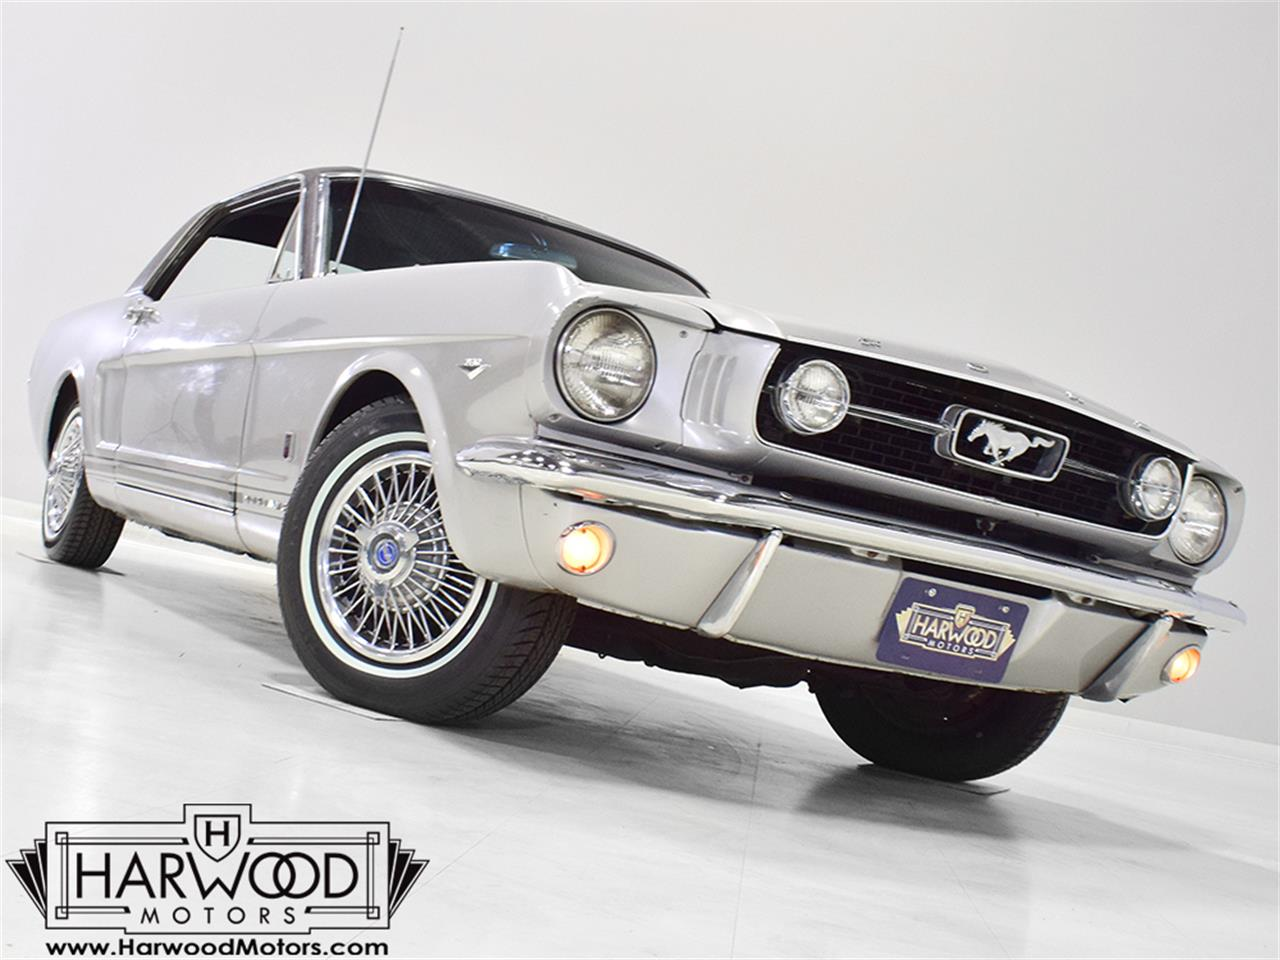 Large Picture of '66 Mustang GT - $29,900.00 Offered by Harwood Motors, LTD. - Q0S5